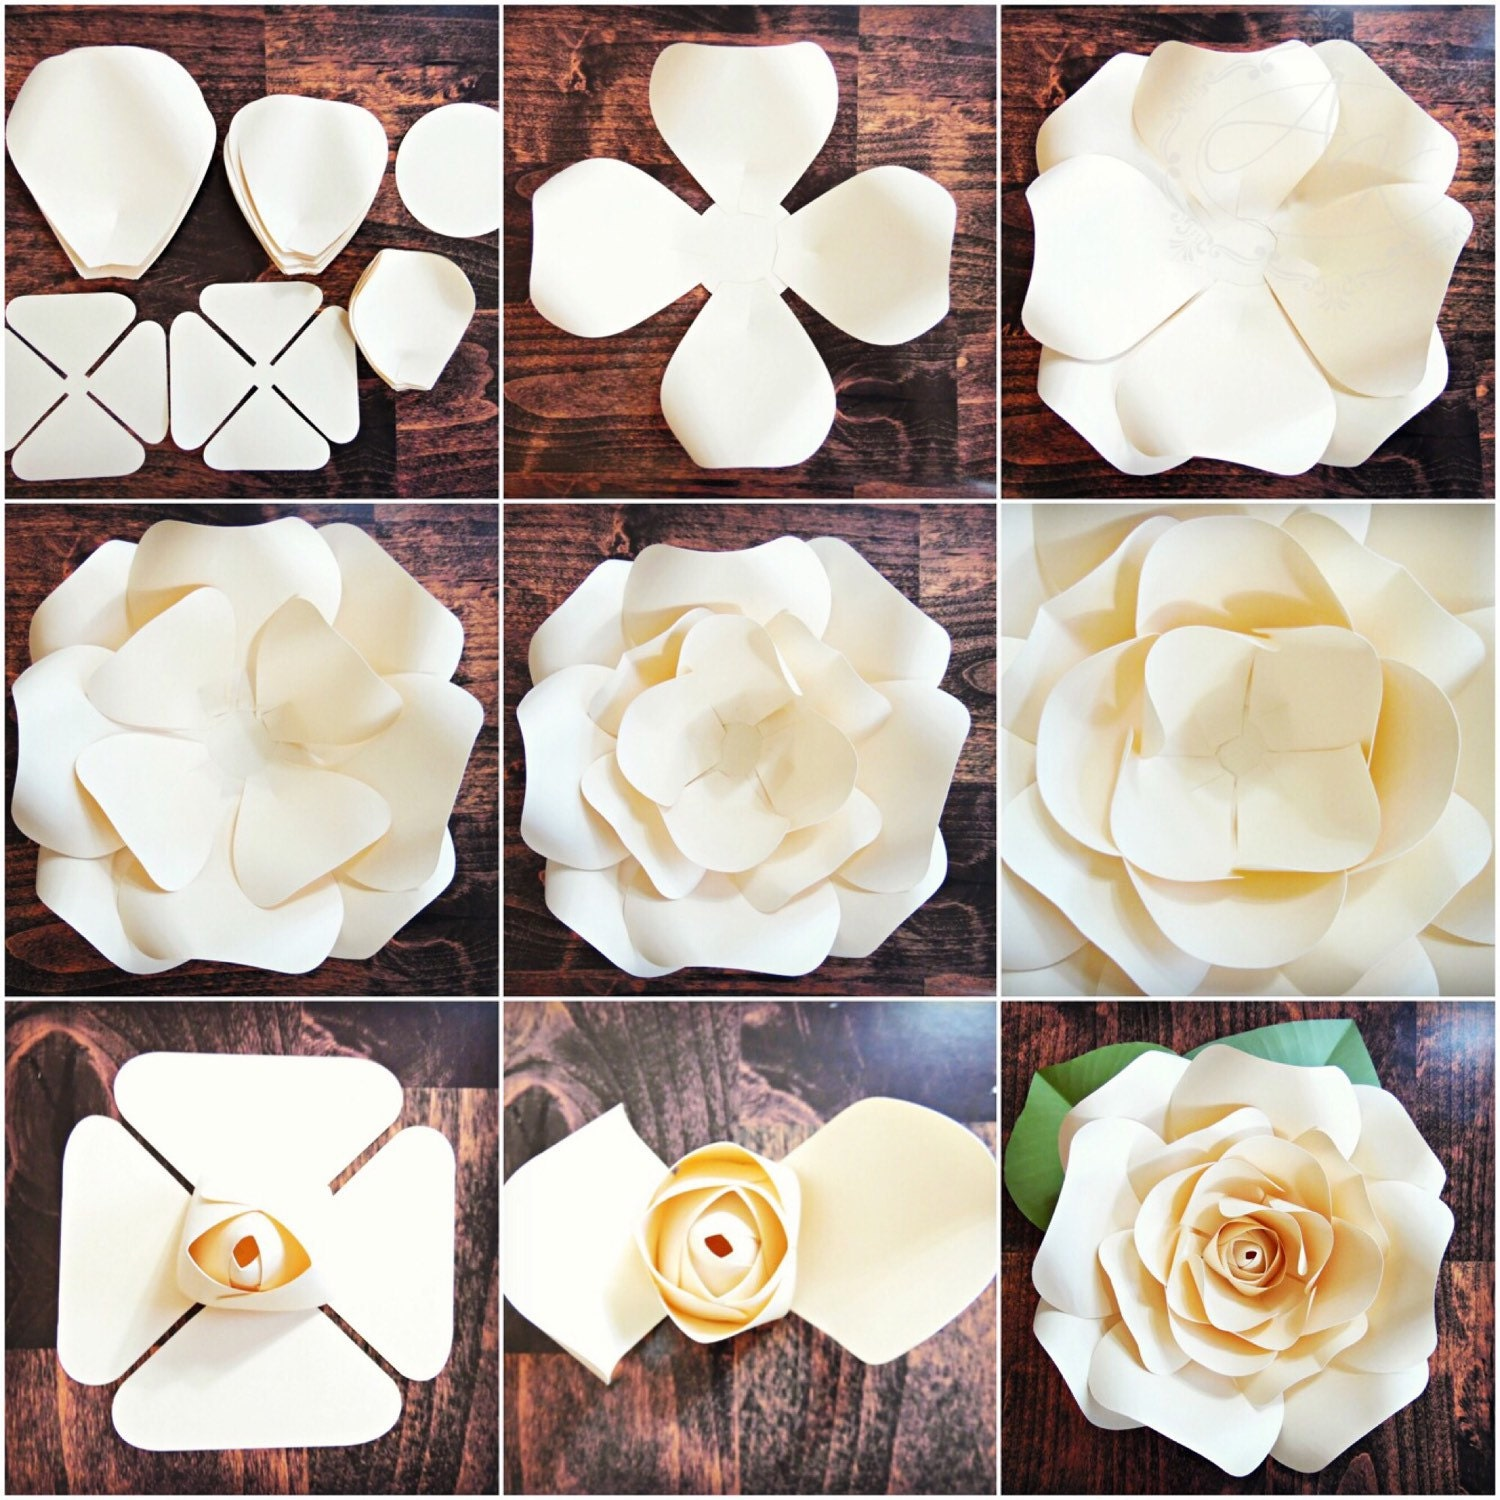 rose petal templates free - diy giant rose templates paper rose patterns tutorials